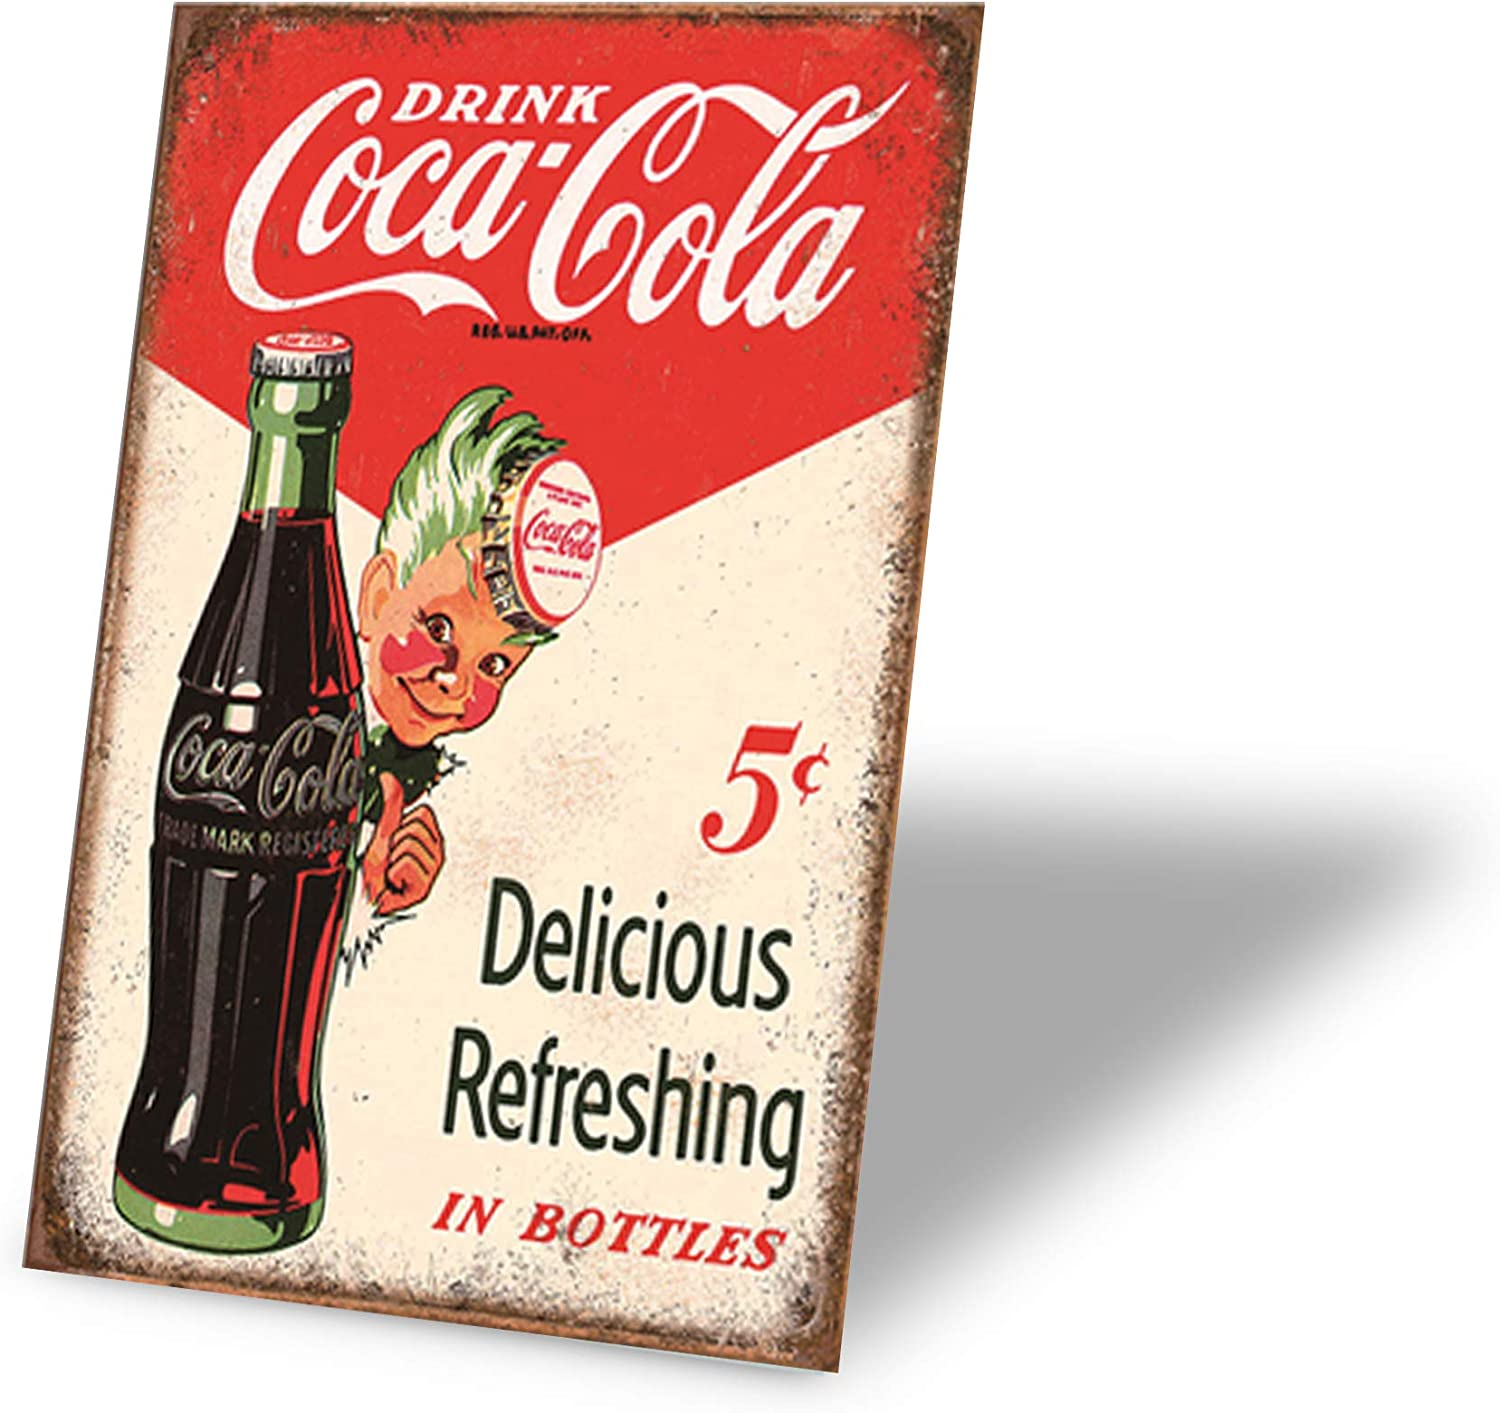 TINSIGNS Drink Coca Cola Delicious Refreshing in Bottles Retro Vintage Bar Signs Tin Sign Vintage 12 X 8 Inch